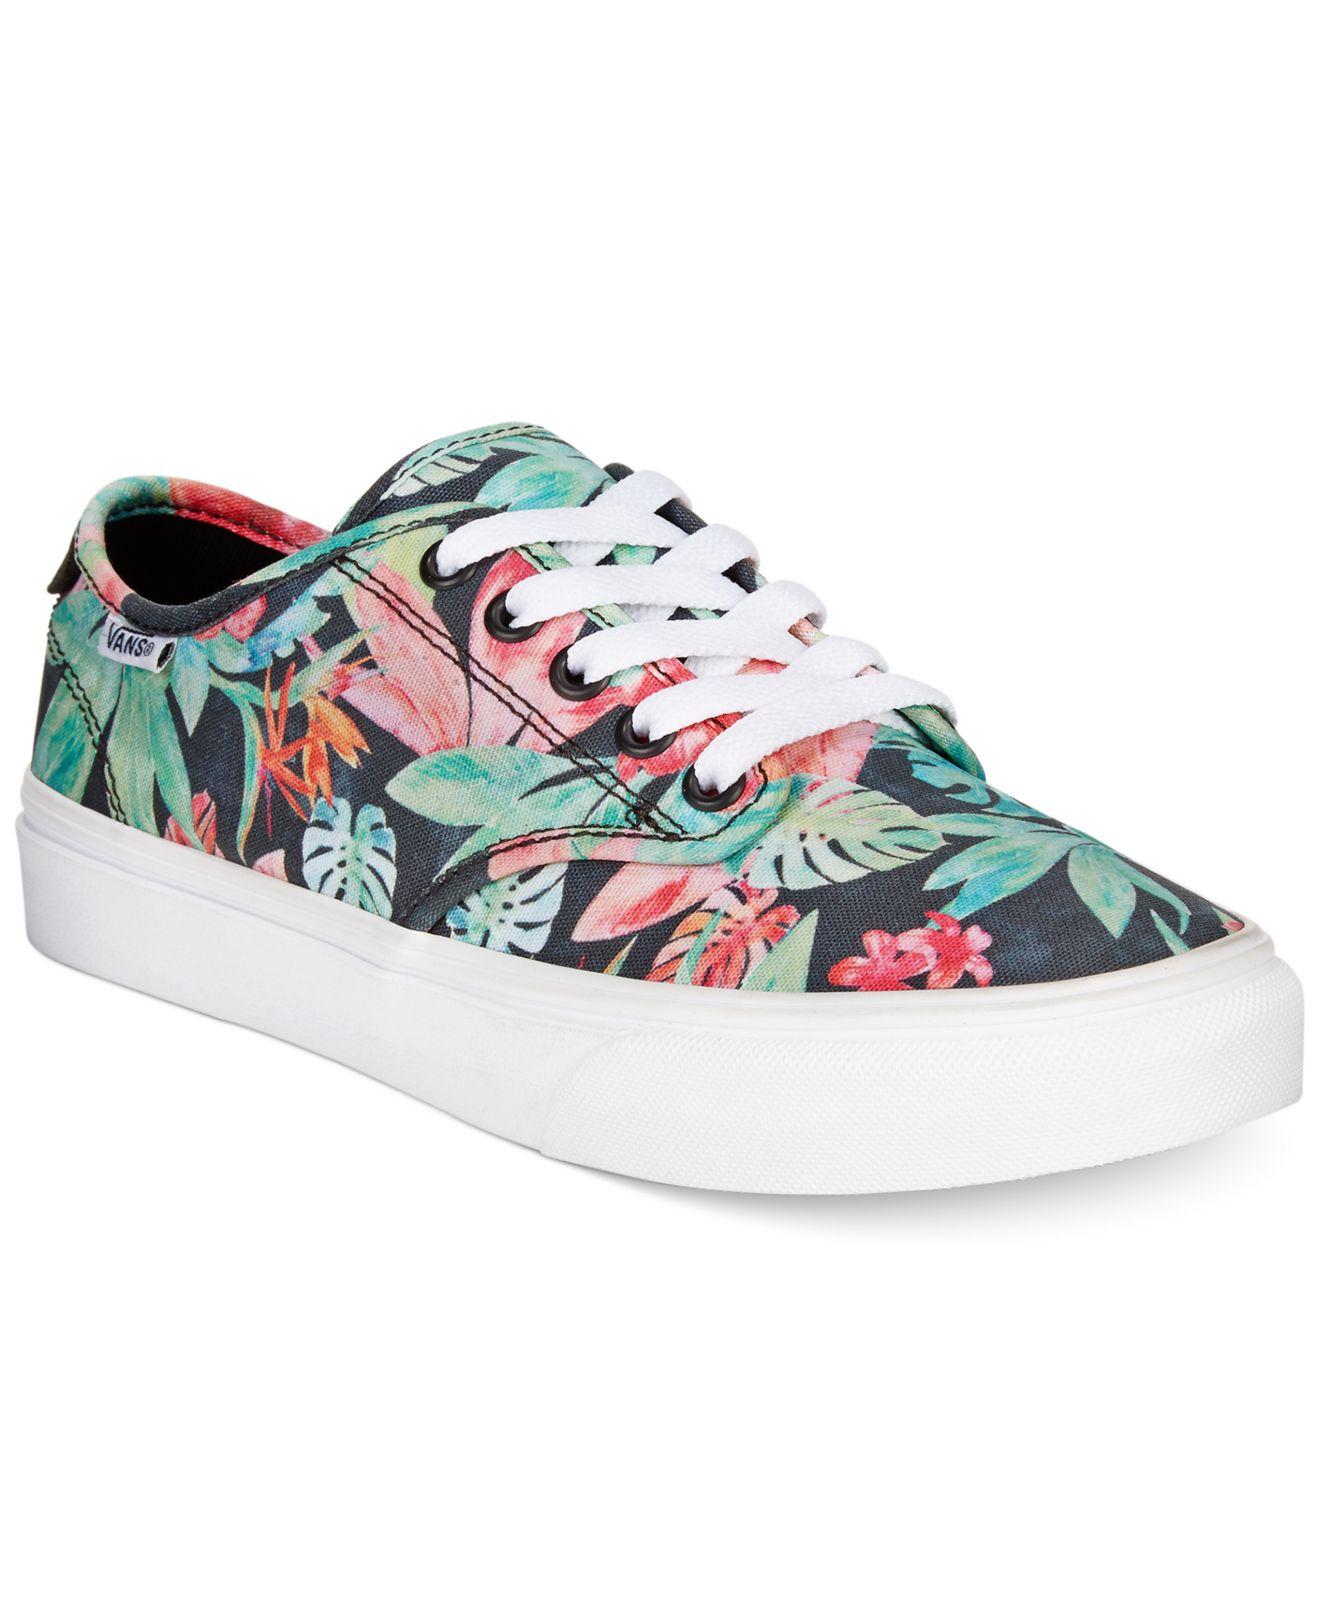 Tropical Running Shoes